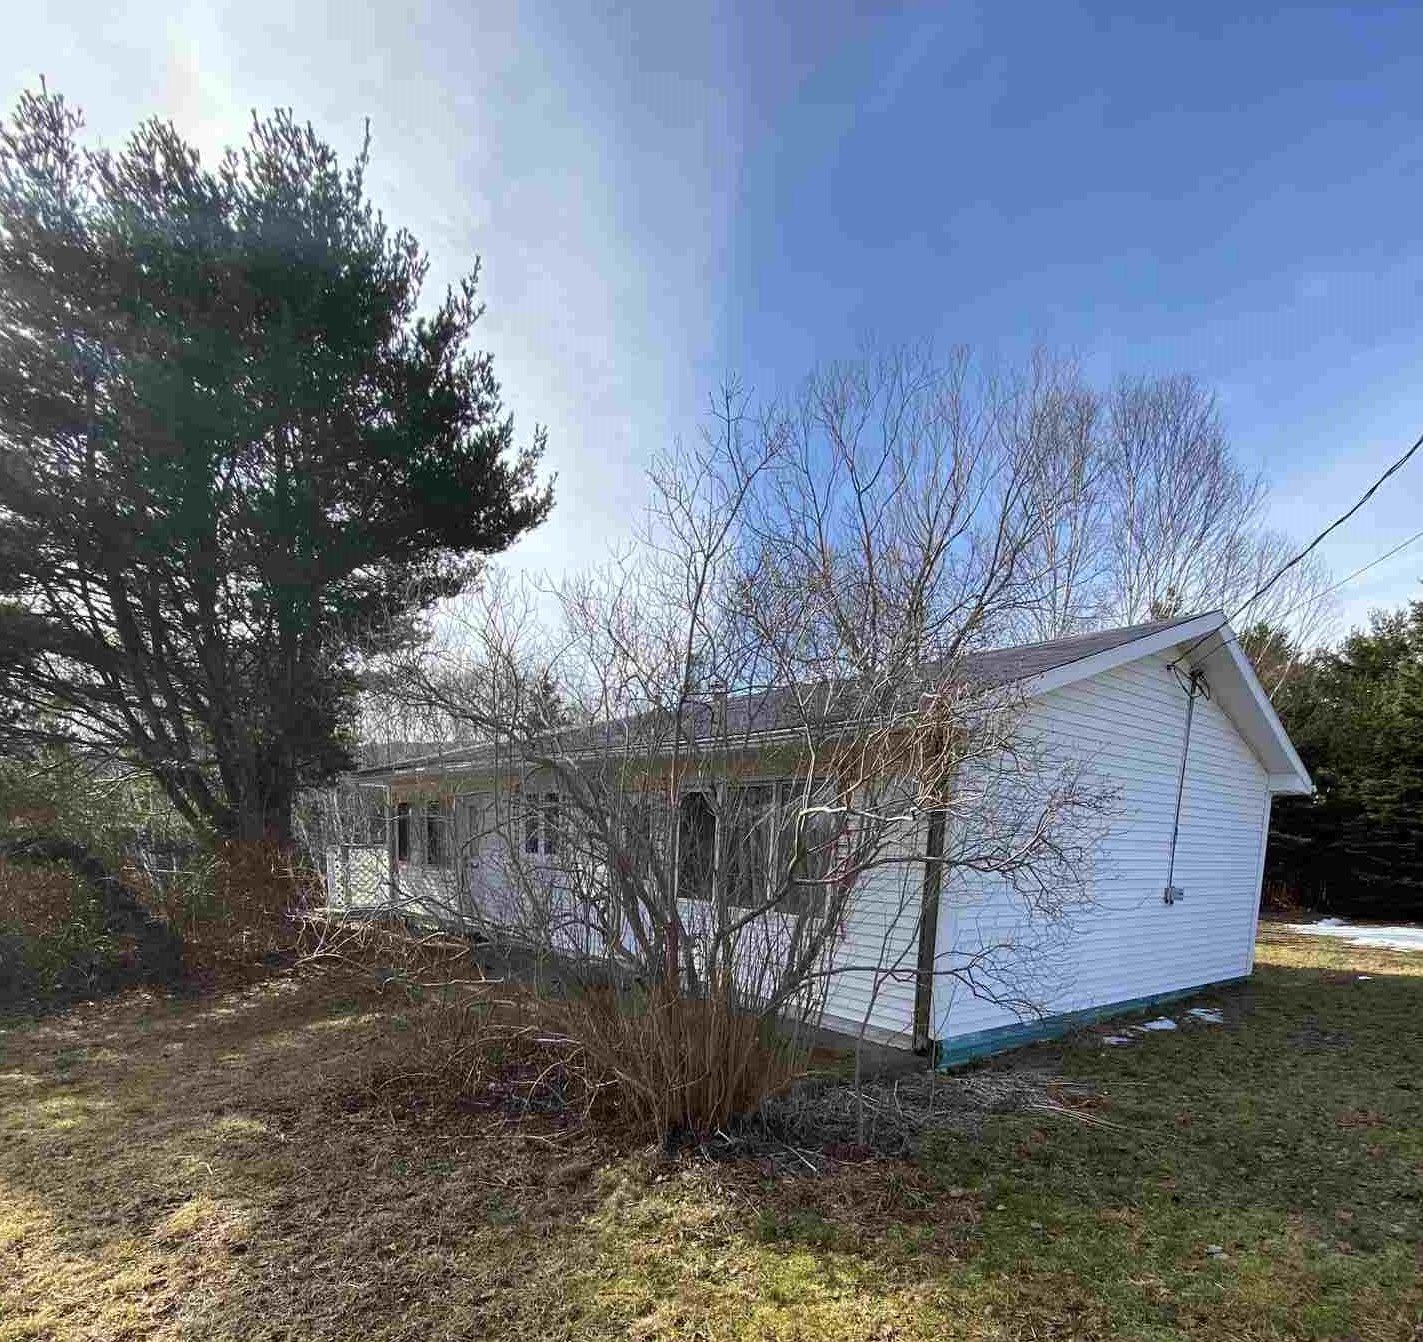 Main Photo: 45916 Cabot Trail in Indian Brook: 209-Victoria County / Baddeck Residential for sale (Cape Breton)  : MLS®# 202102070